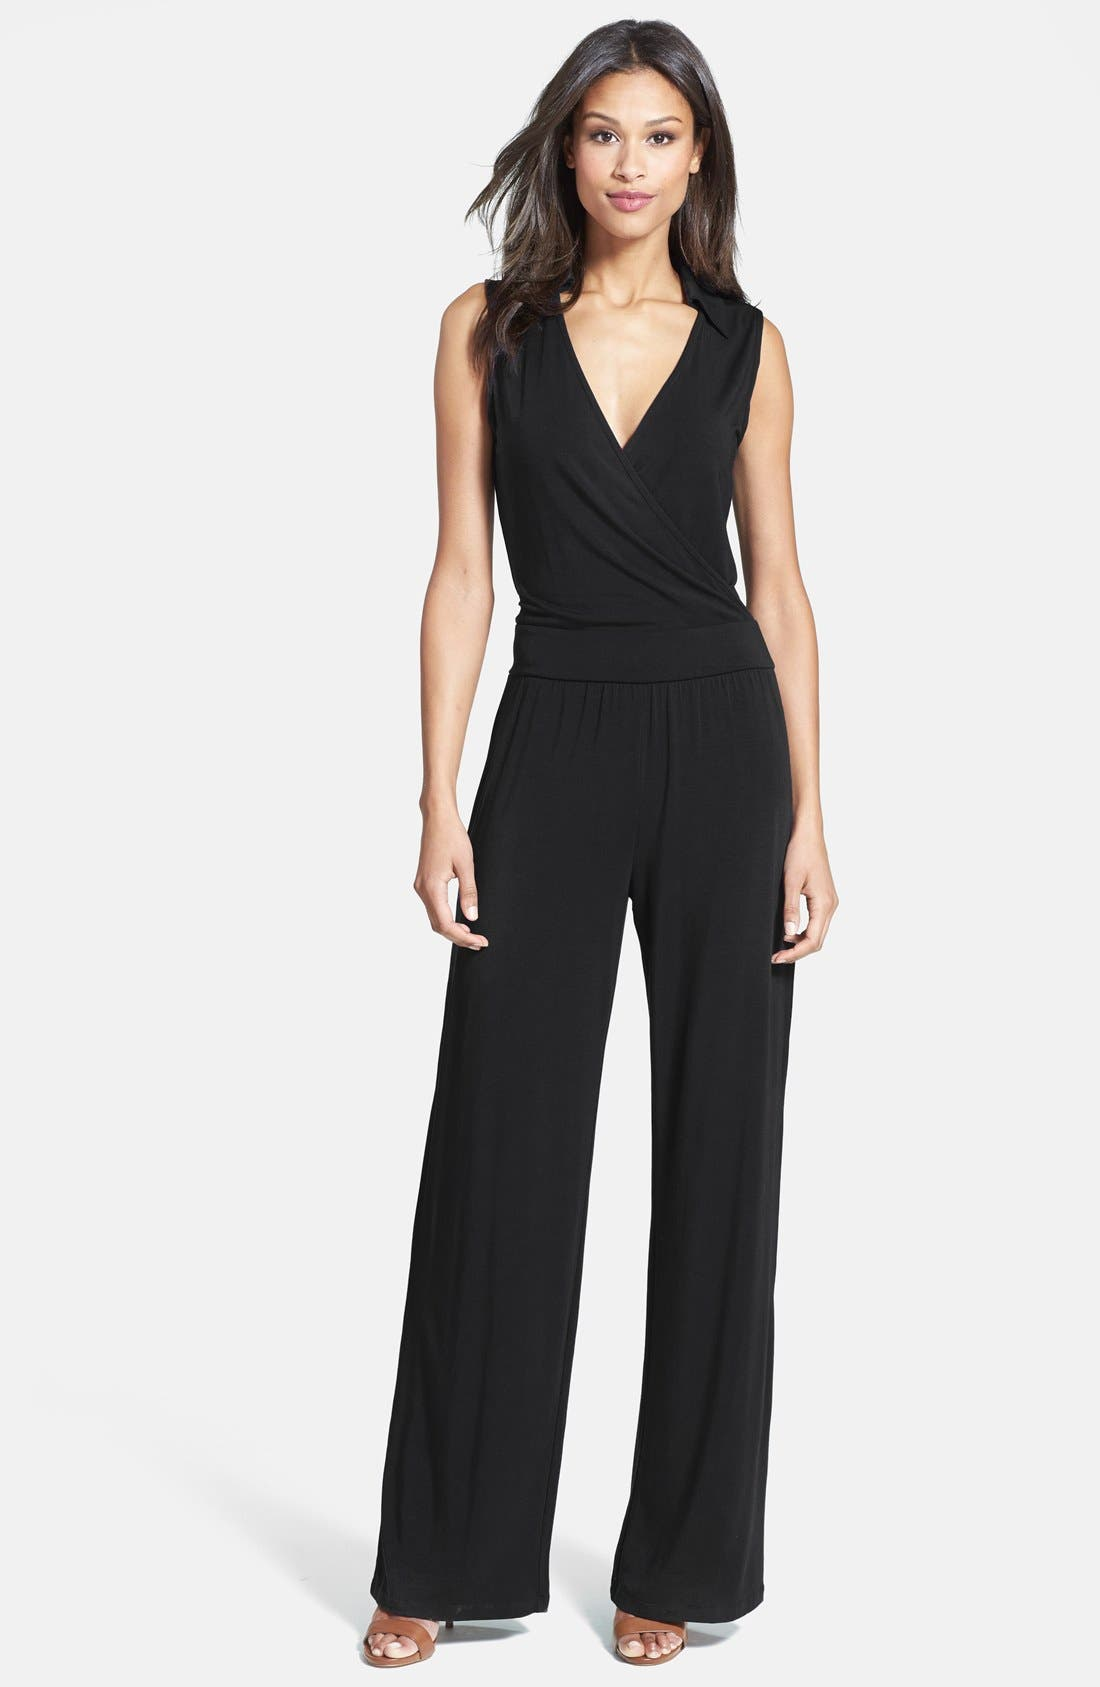 TART, 'Kenna' V-Neck Stretch Jersey Jumpsuit, Main thumbnail 1, color, 001